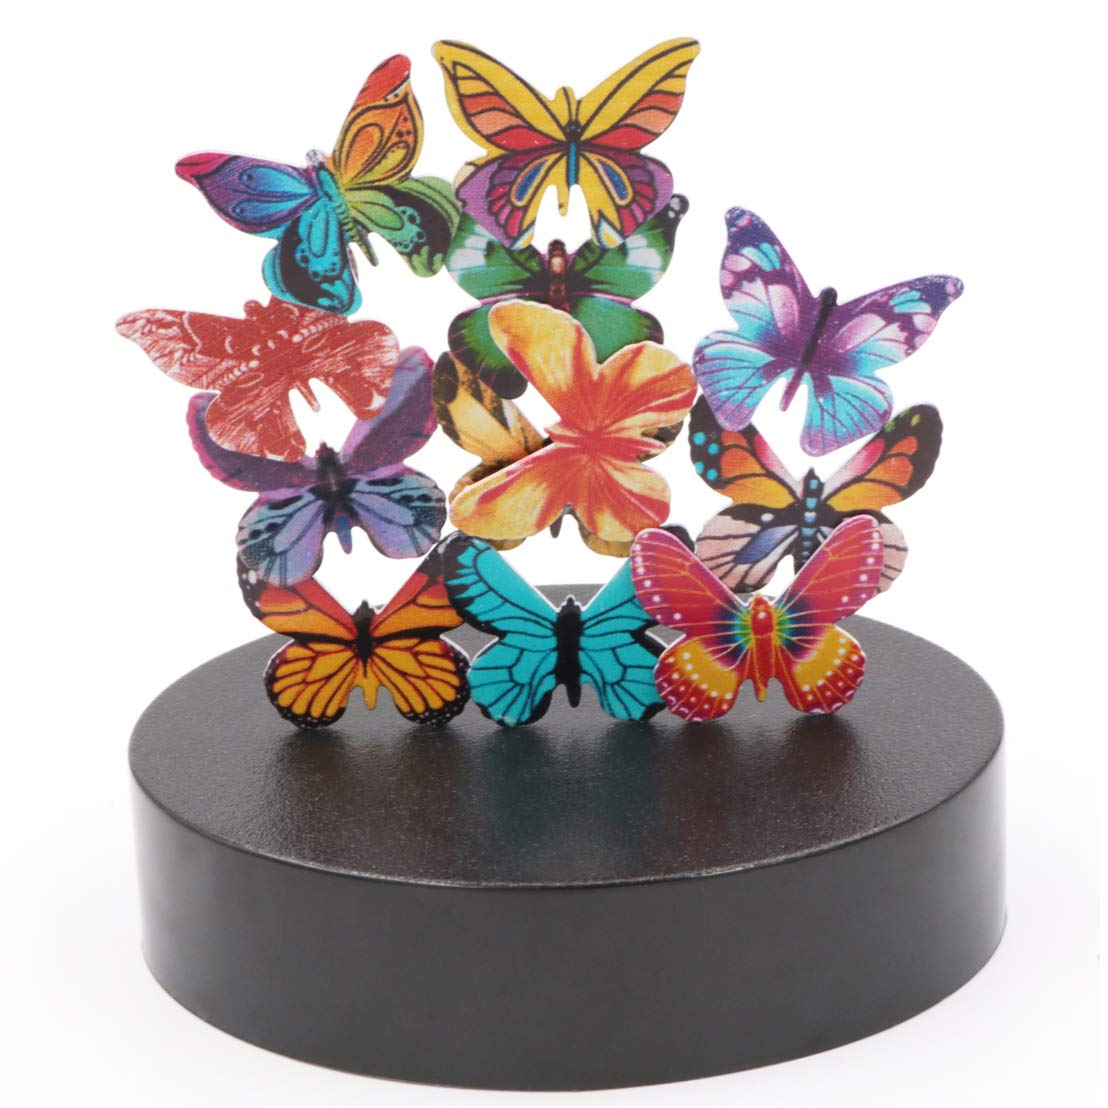 JxyzyxJ Magnetic Sculpture Desk Toy Office Decor Stress Reliever Stocking Stuffer - A Magnetic Base and 12 Butterflies